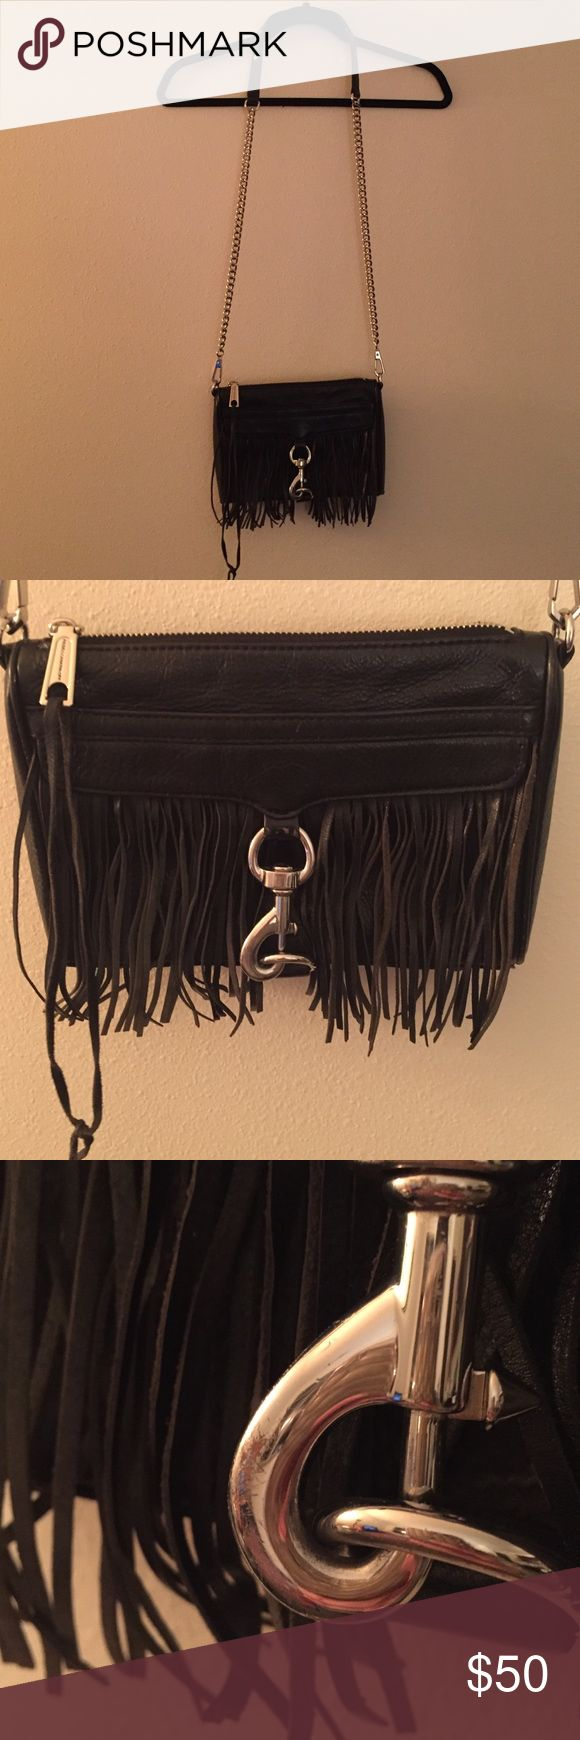 Rebecca Minkoff Mini Mac with Fringe Authentic Rebecca Minkoff mini Mac with fringe. Black leather, silver hardware. Worn condition as seen in pic of corner and the metal.  I loved this bag, it's so fun looking. Rebecca Minkoff Bags Crossbody Bags